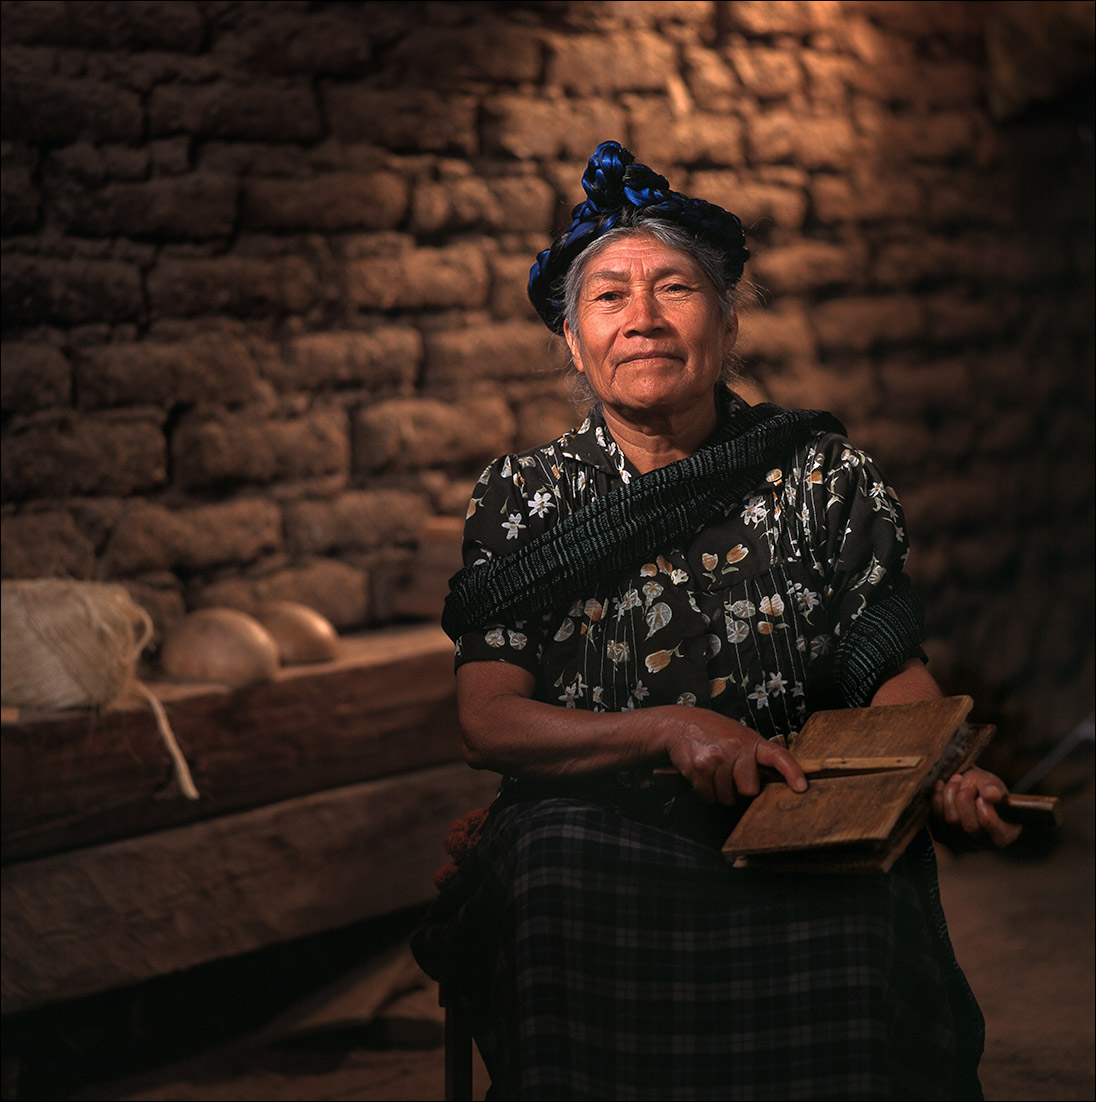 asuncion, Zapotec Women of Oaxaca